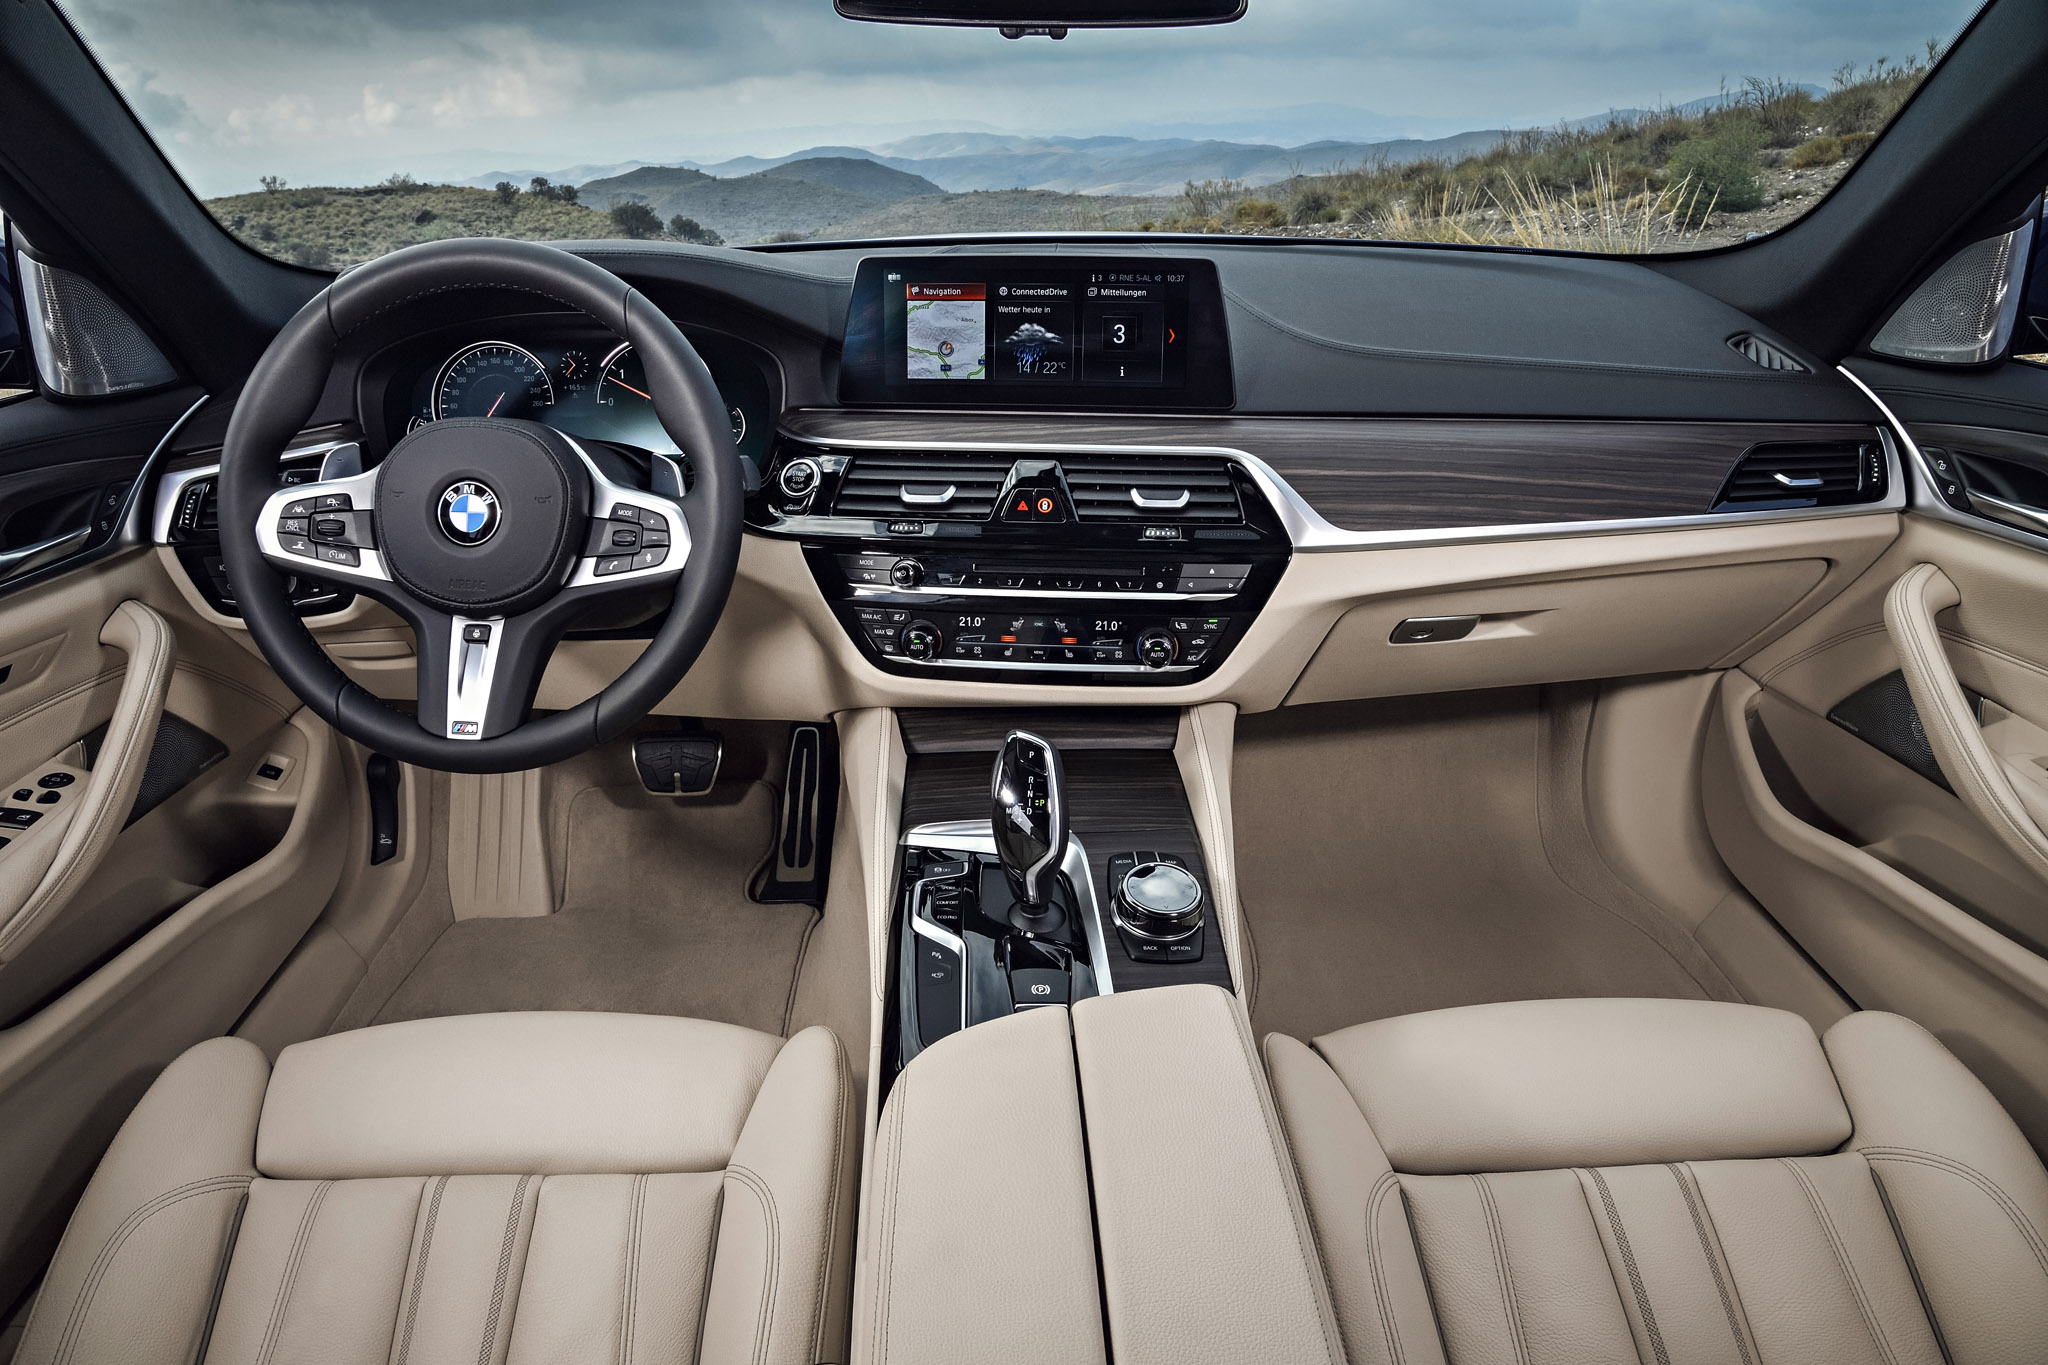 2018 bmw interior. beautiful interior show more inside 2018 bmw interior i